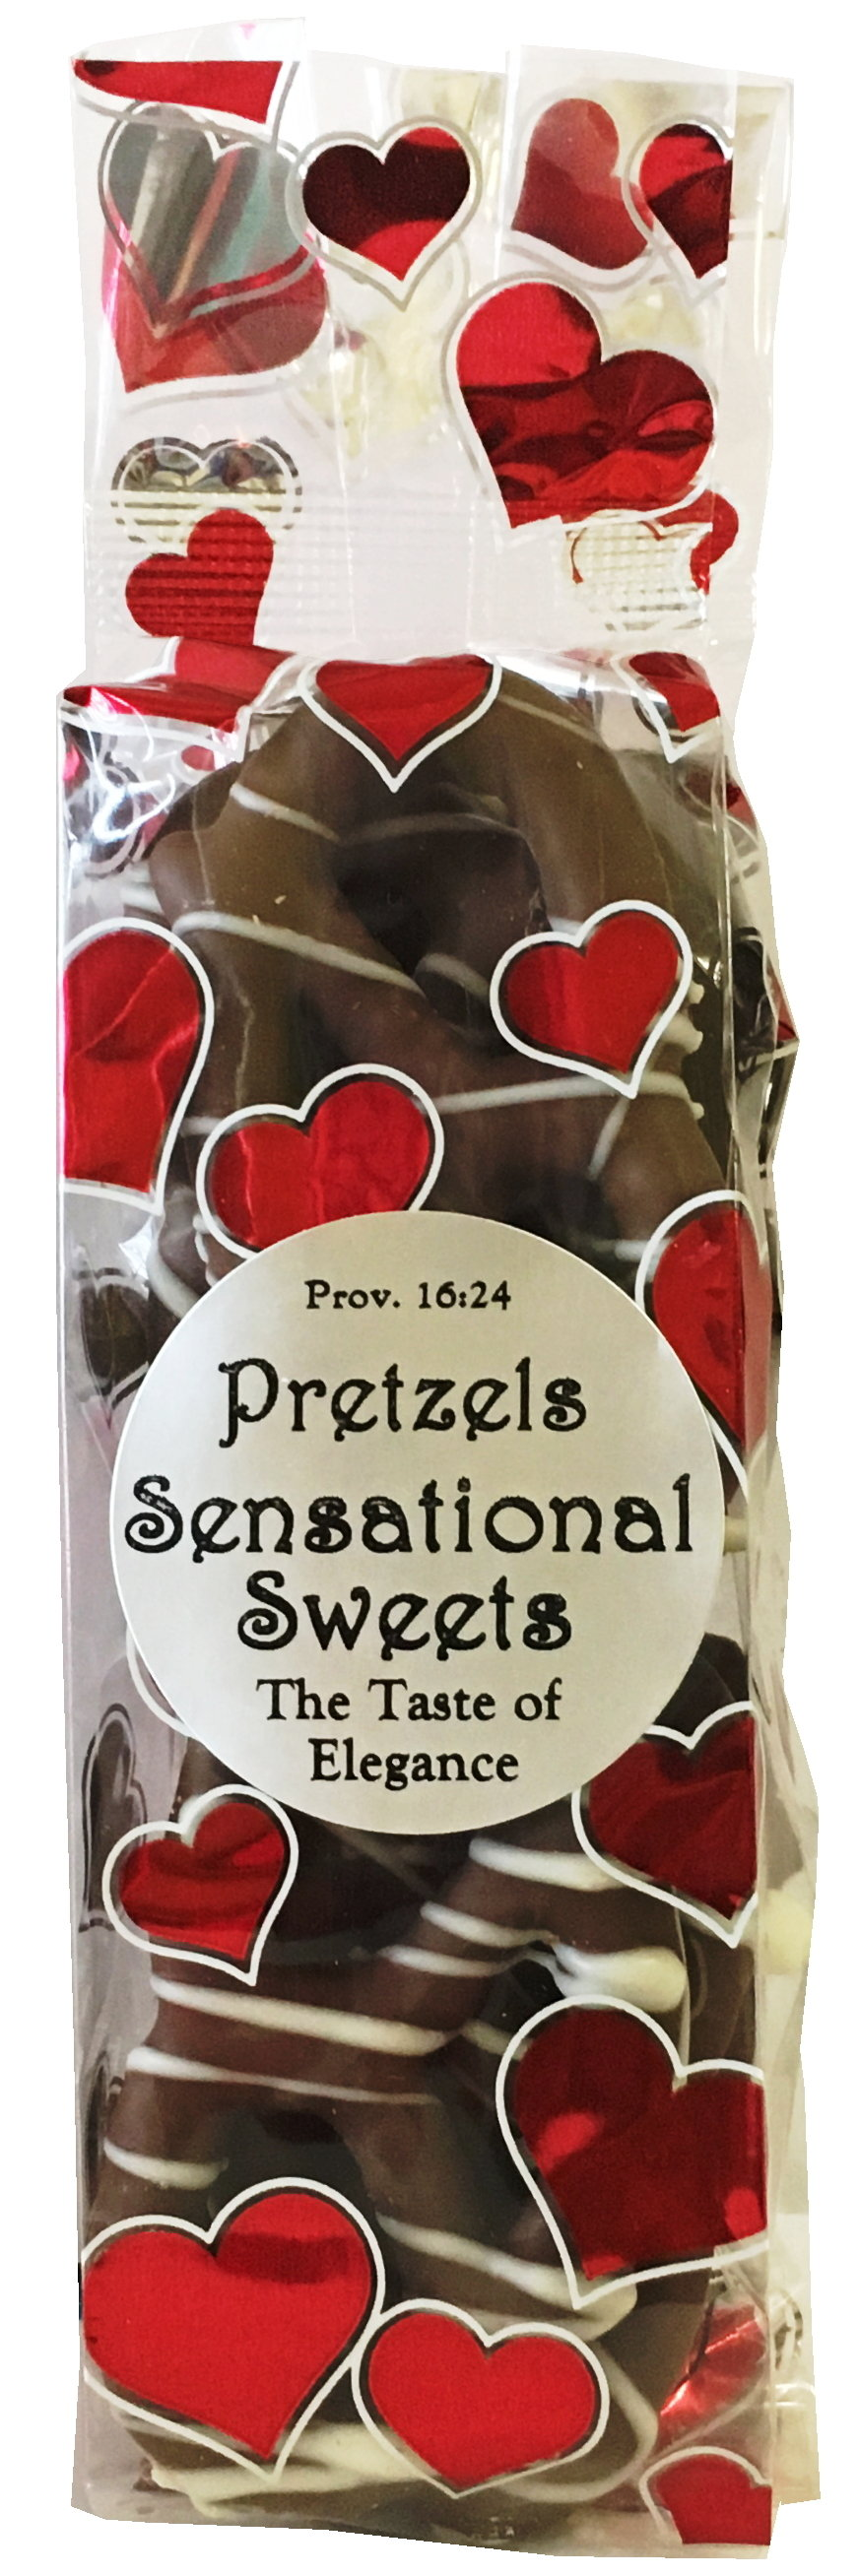 Gourmet Pretzels - Chocolate Dipped - 10 Pretzels per Bag - Heart Bag - Wholesale W-P12H